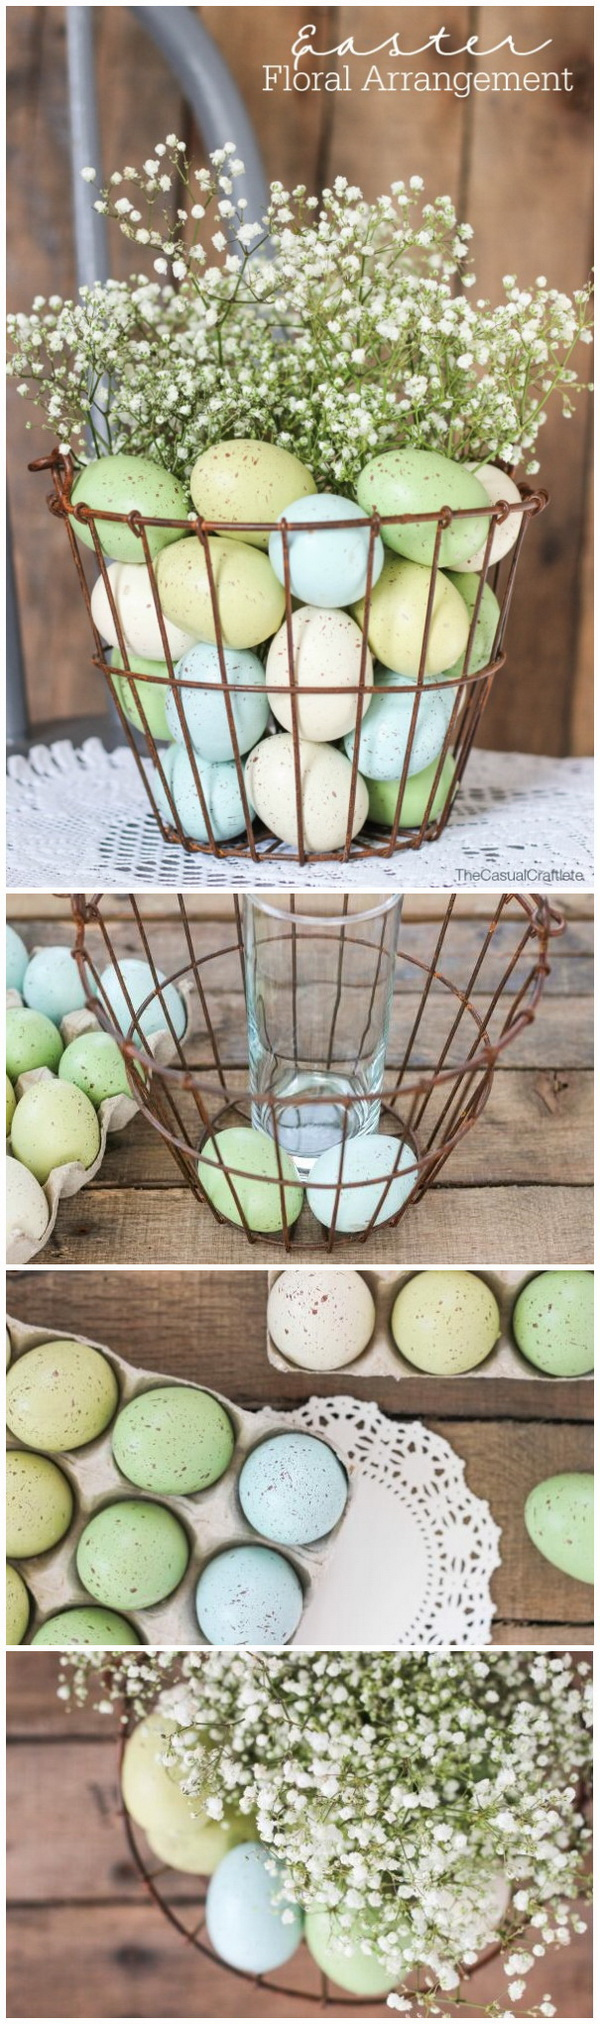 60+ Best DIY Easter Decoration Ideas - For Creative Juice